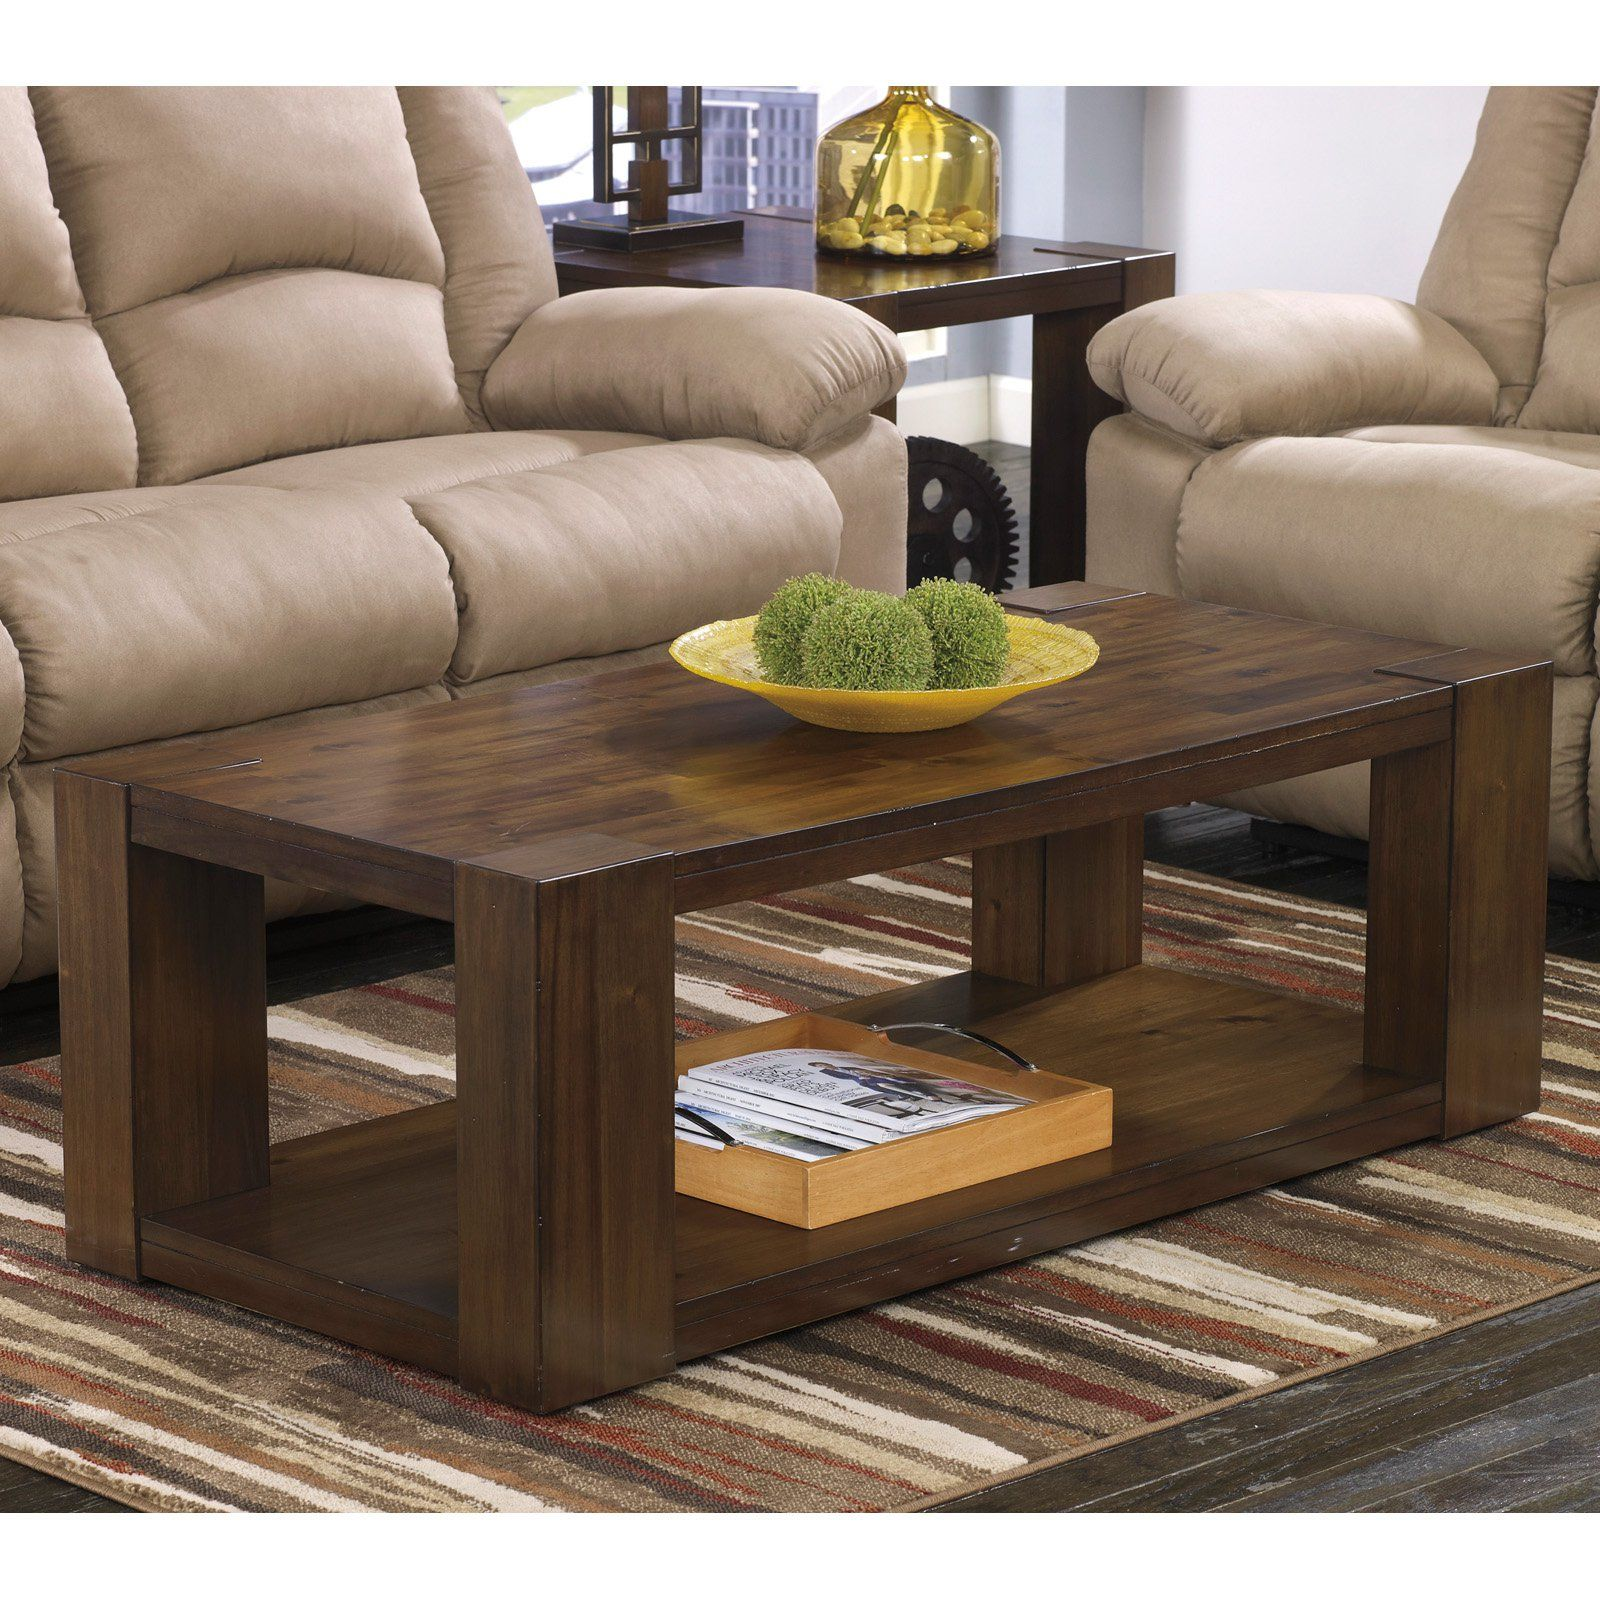 313ea7cd9d20e734f4fc0aef78aaf3bd Top Result 50 Lovely Redwood Coffee Table Photos 2017 Hgd6